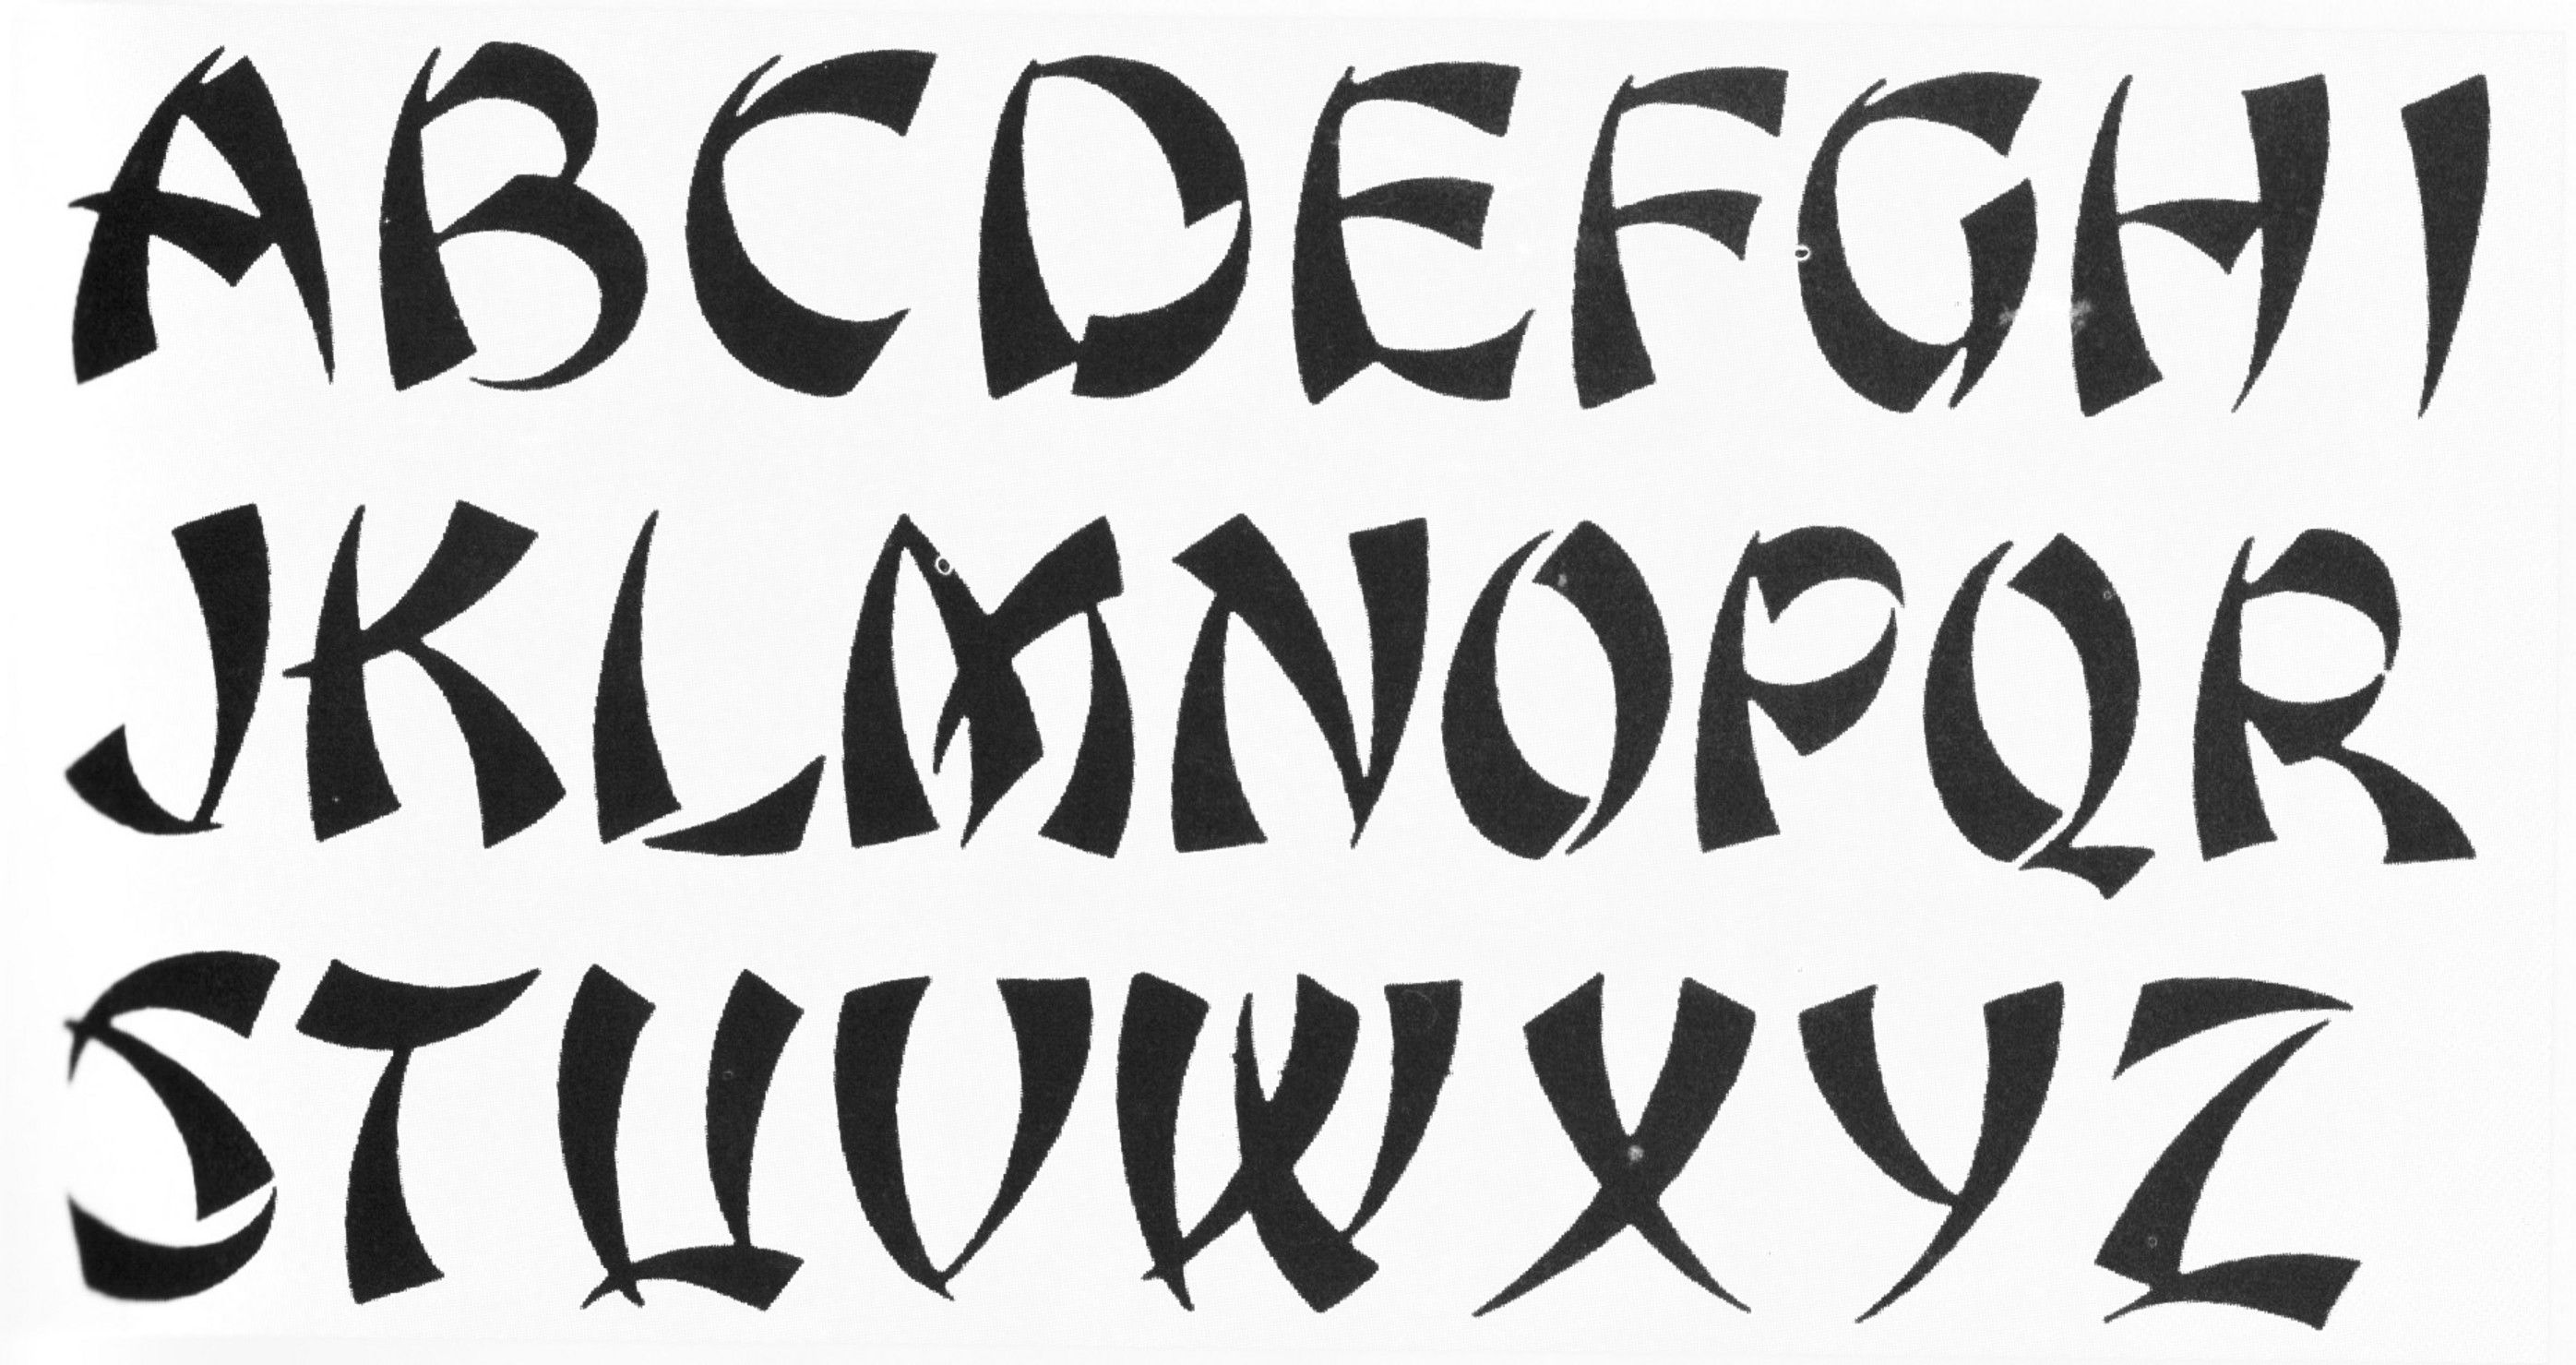 Cool Tattoo Font Design Fontes de letra, Letras chinesas